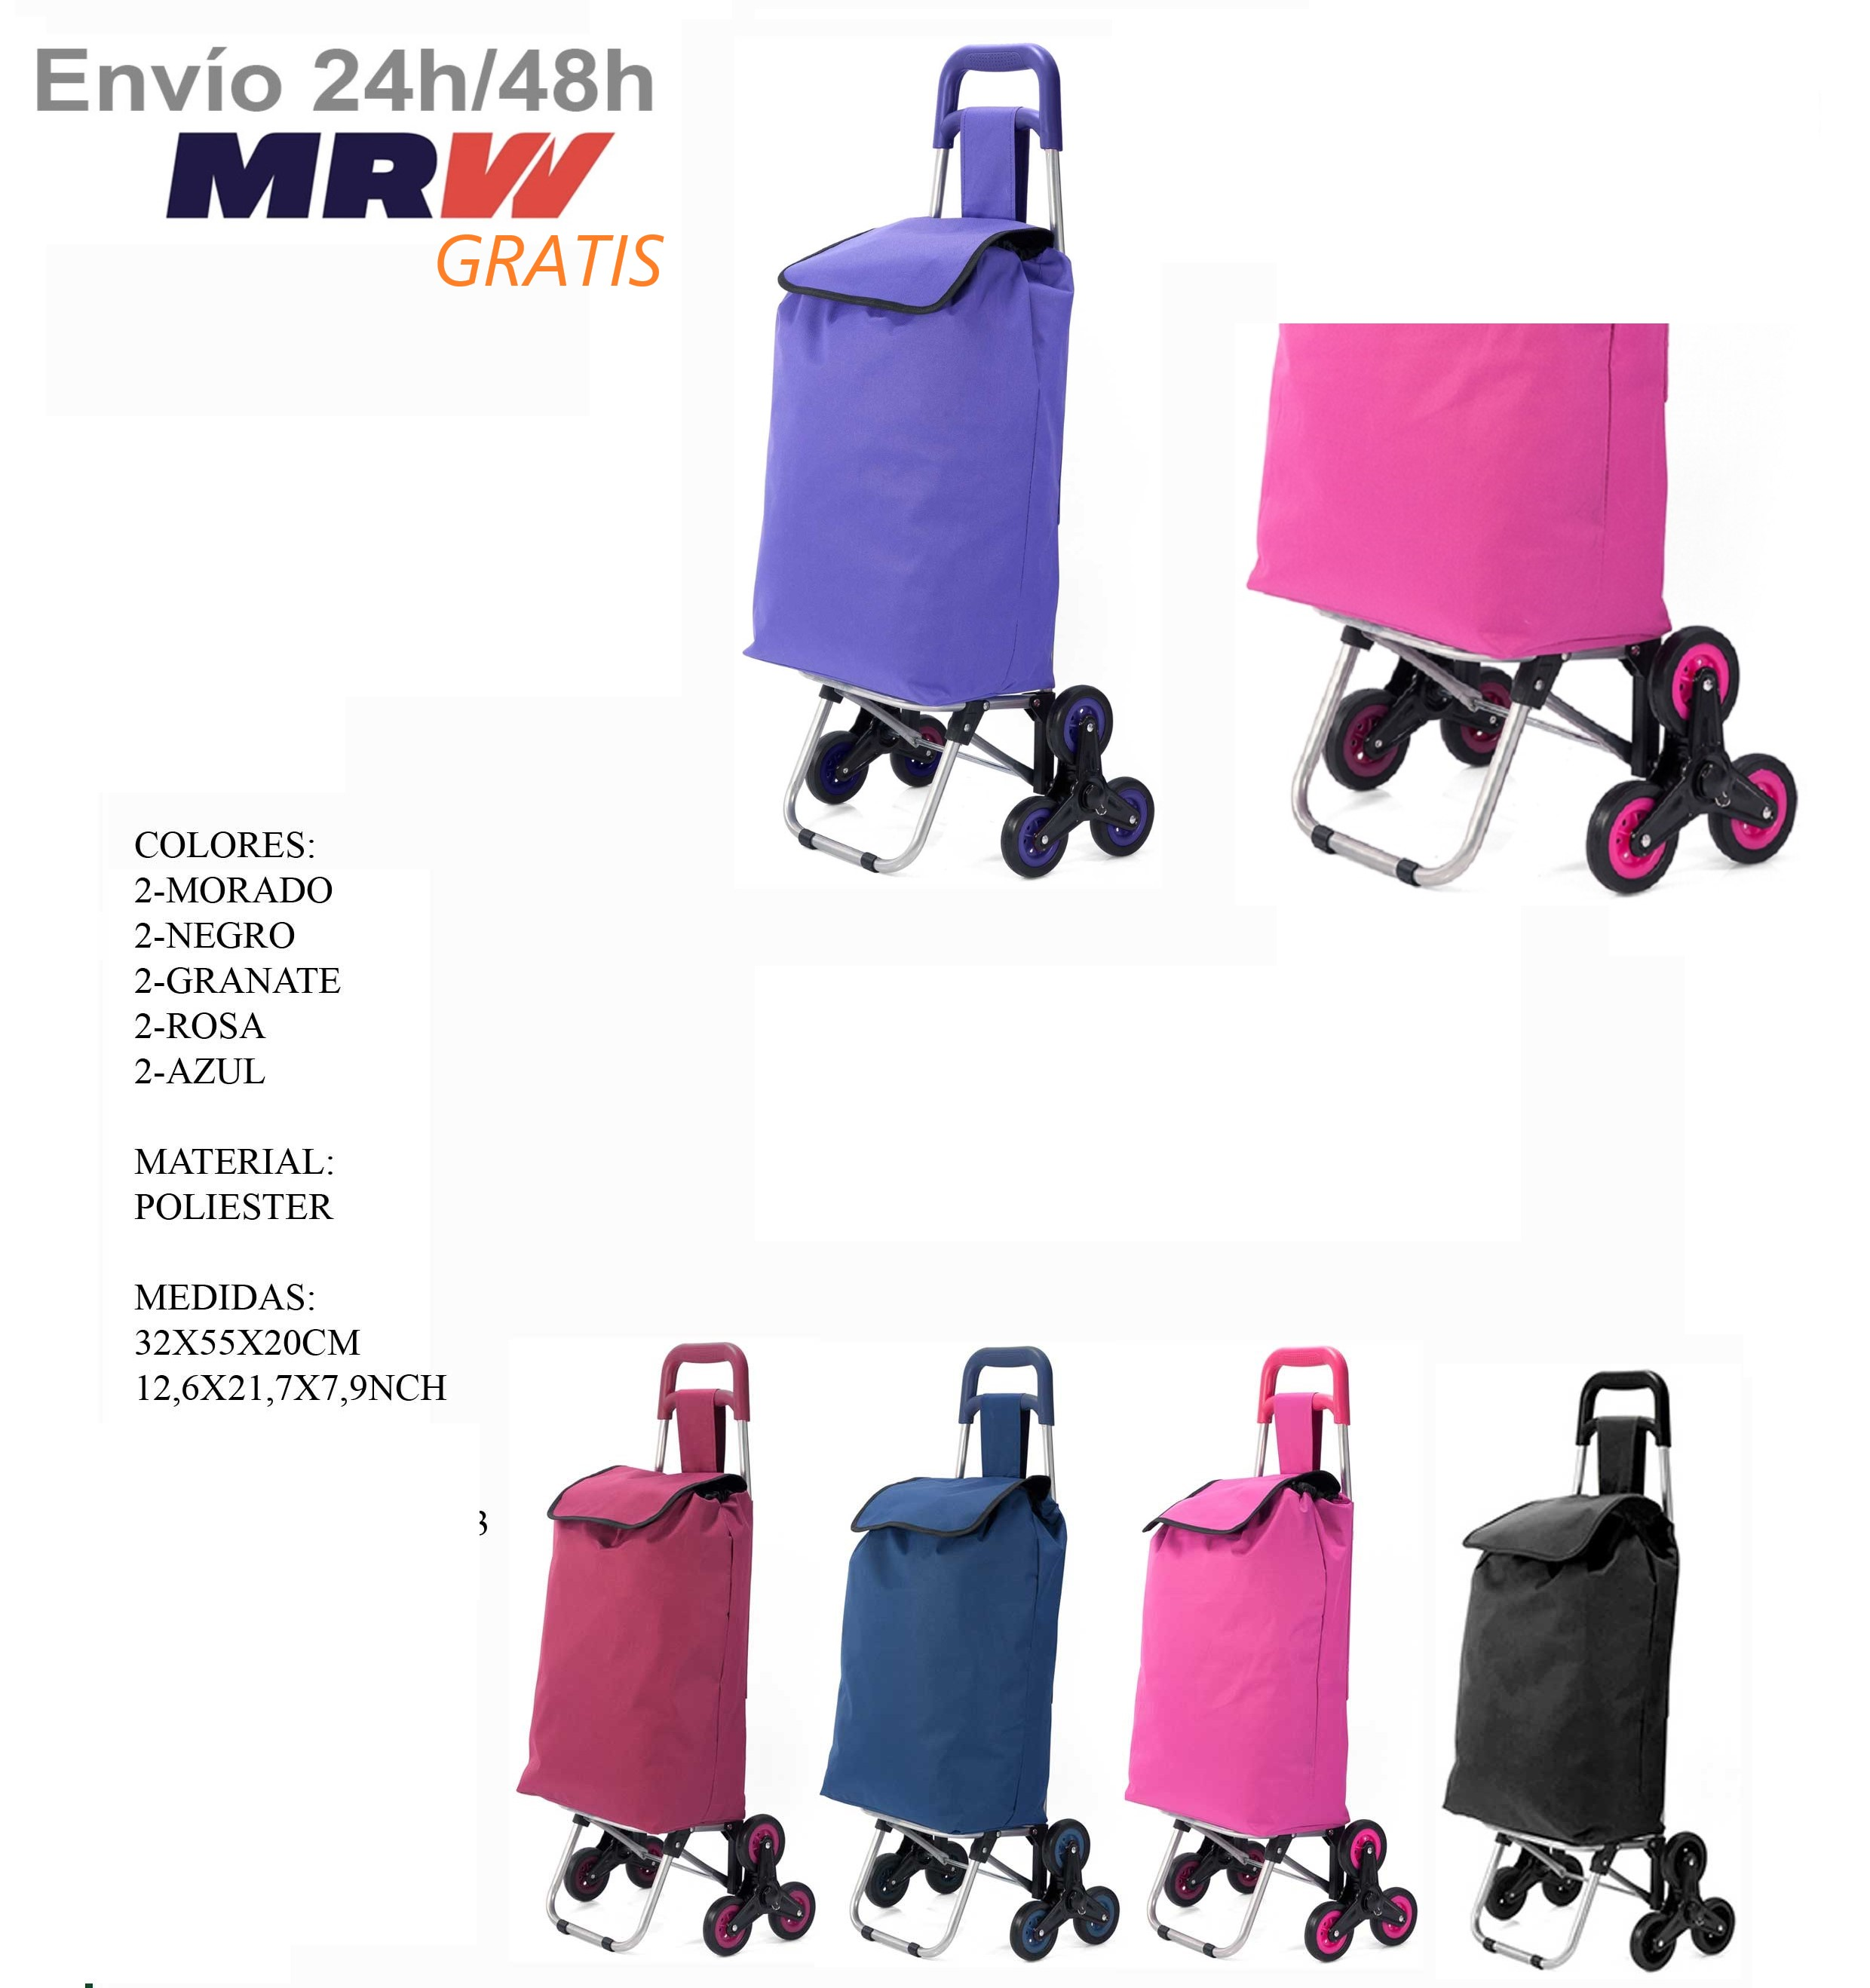 Trolley Polyester Folding Shopping Trolley For Over Age Climbing Stairs With Triple Light Wheel Wheels Top